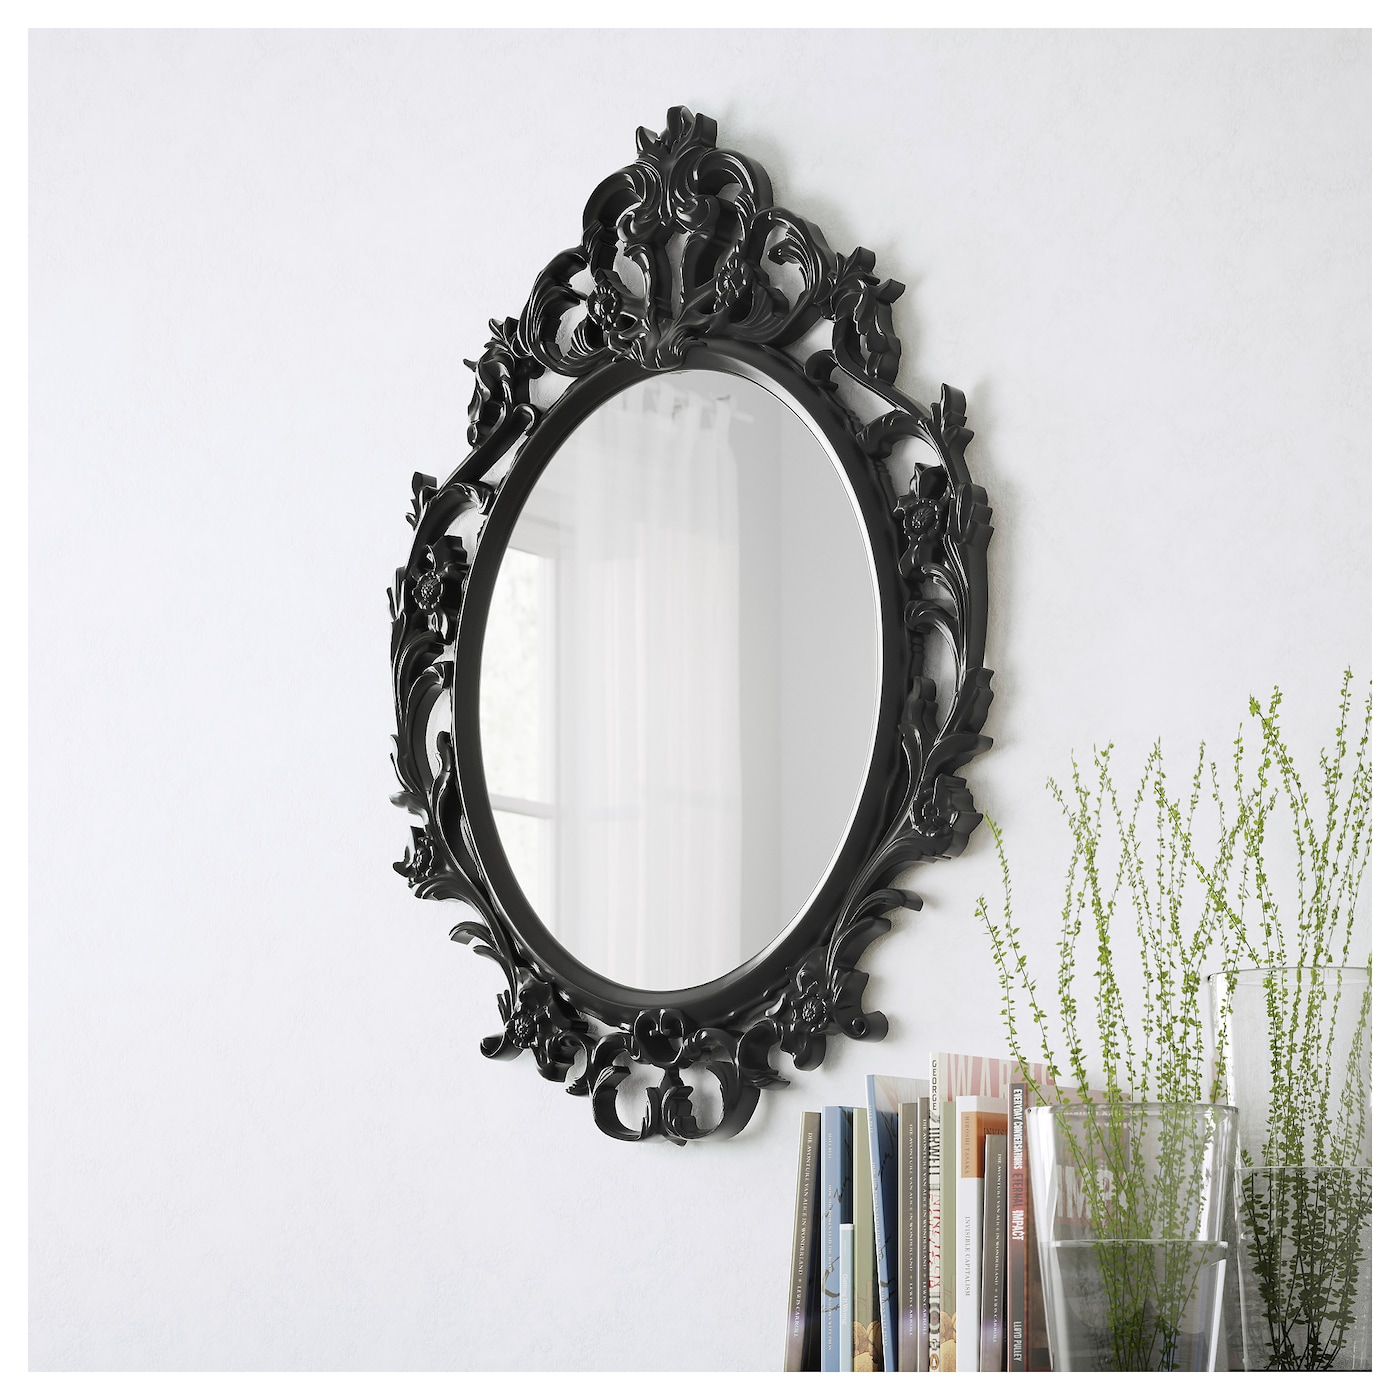 ung drill mirror oval black 59x85 cm ikea. Black Bedroom Furniture Sets. Home Design Ideas